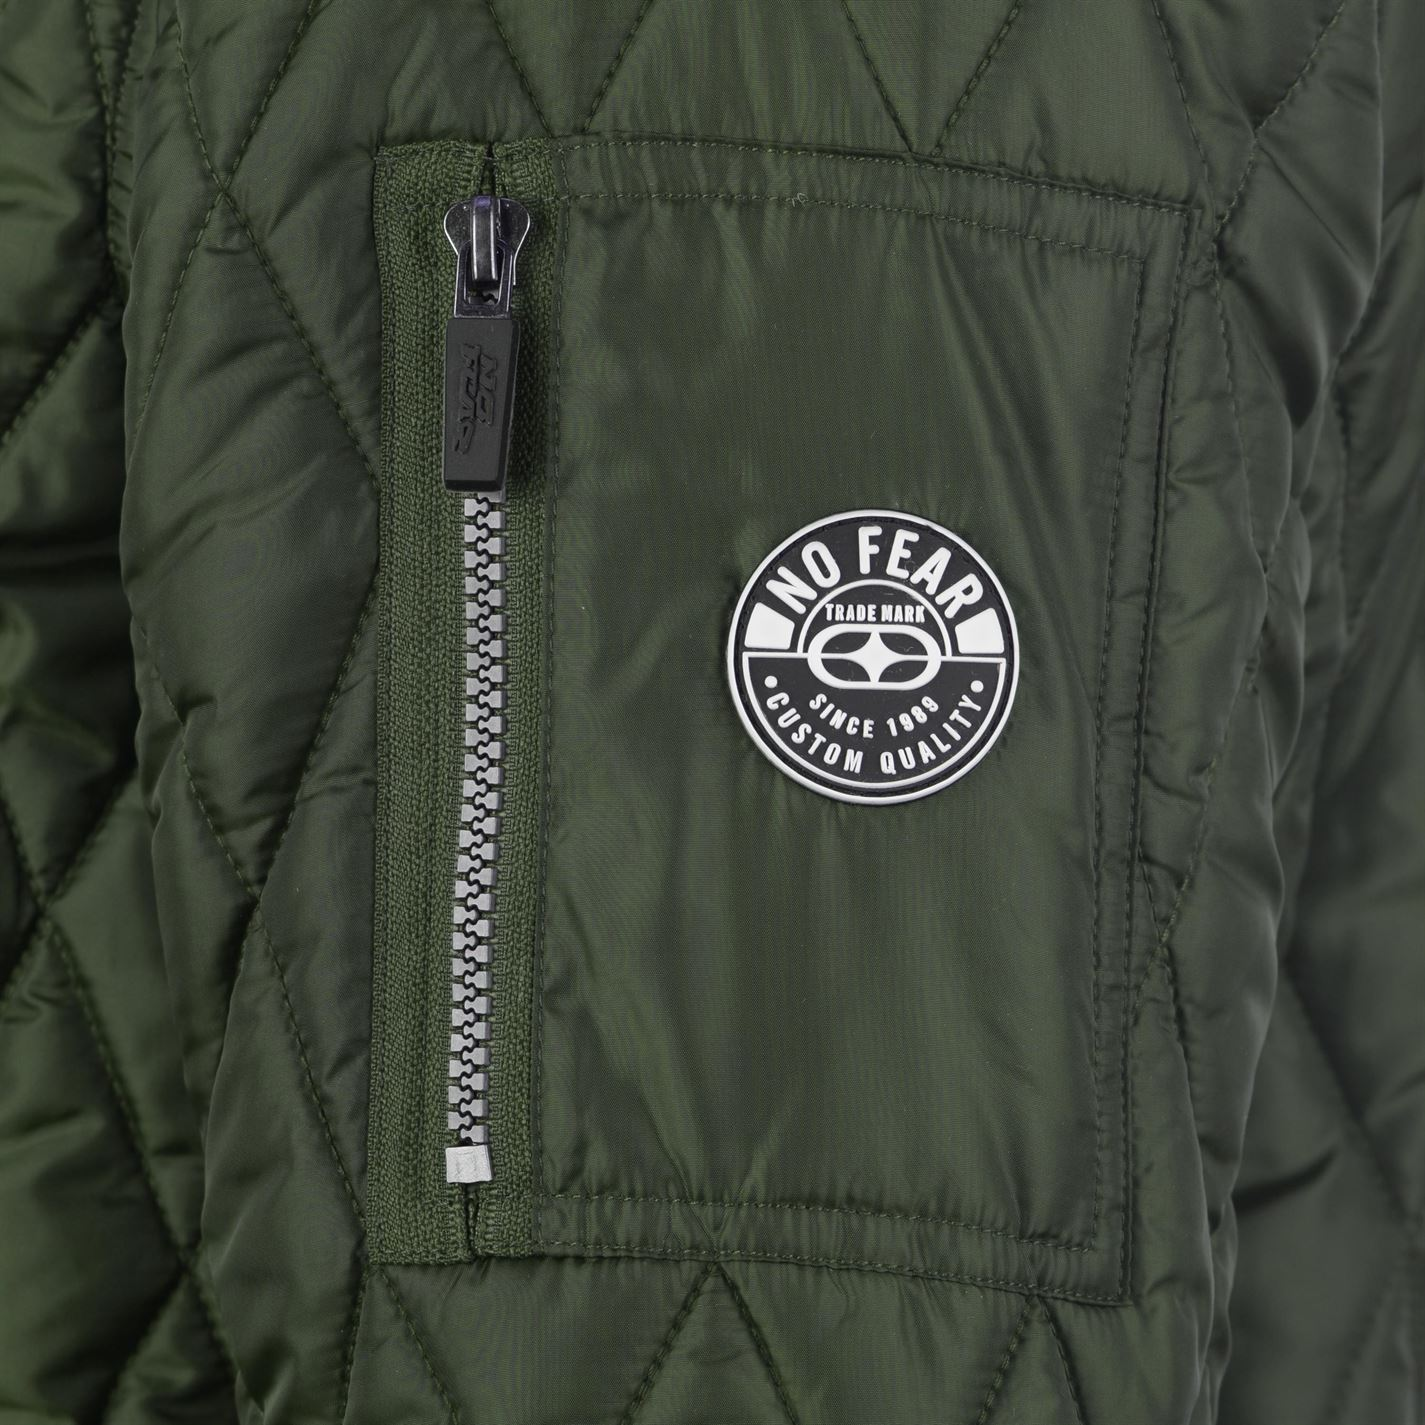 No-Fear-Quilted-Bomber-Jacket-Mens-Gents-Coat-Top-Full-Length-Sleeve-Zip-Zipped thumbnail 15